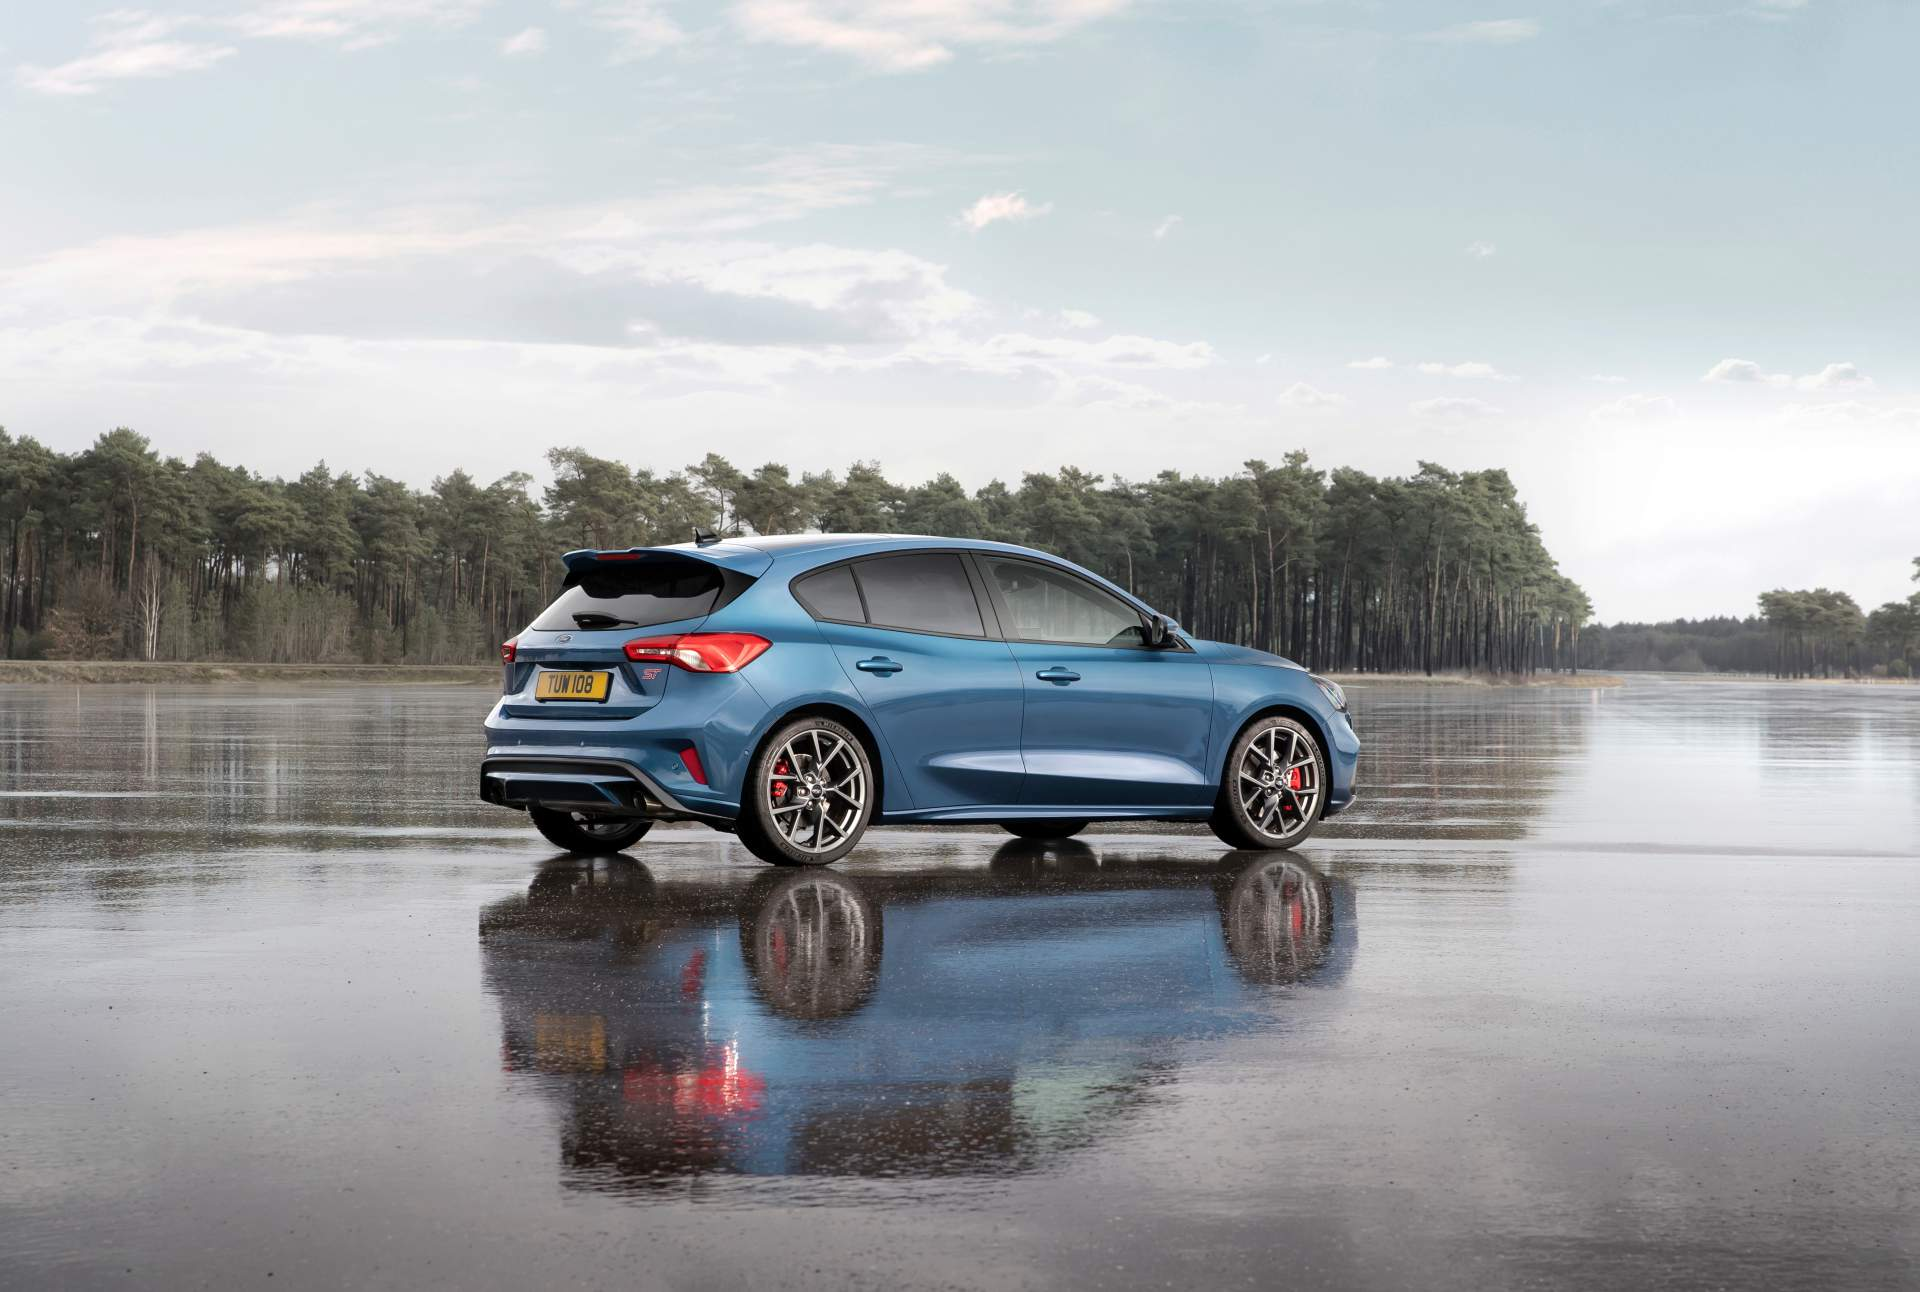 Diesel 2019 Ford Focus ST Is As Expensive As the Hyundai i30 N Performance - autoevolution